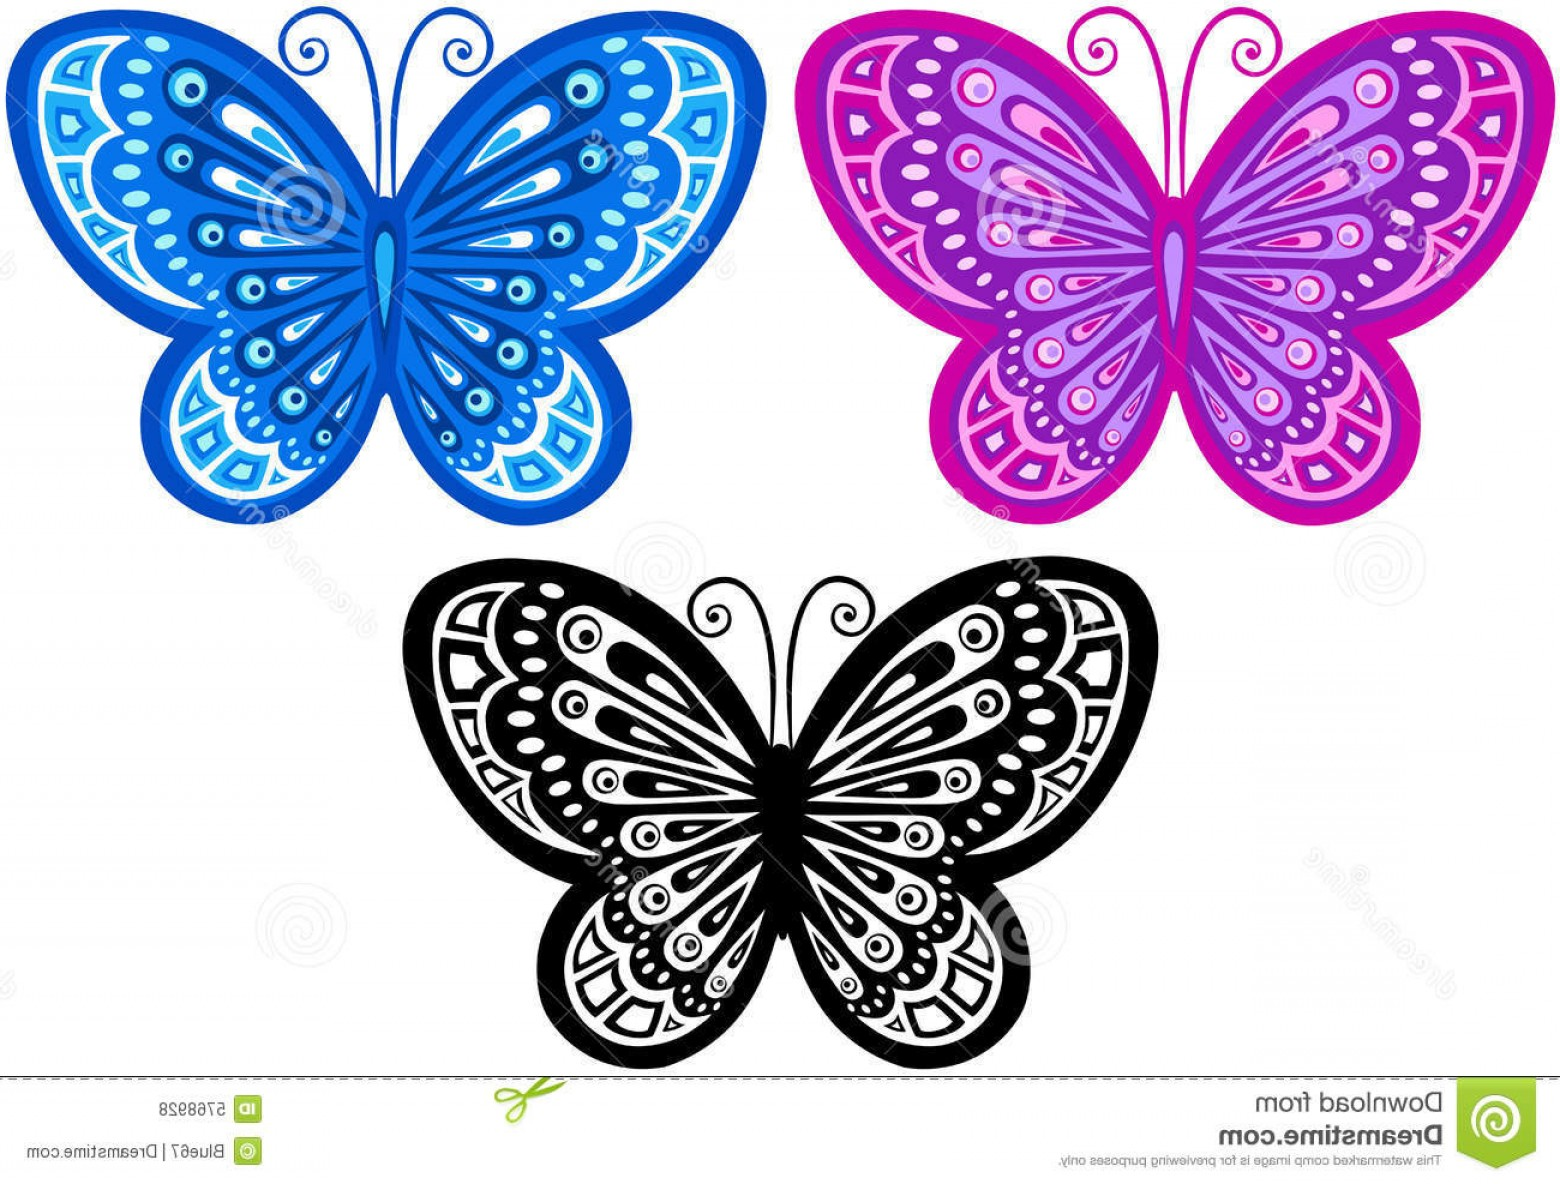 Butterly Vector: Royalty Free Stock Photos Butterfly Vector Illustration Image